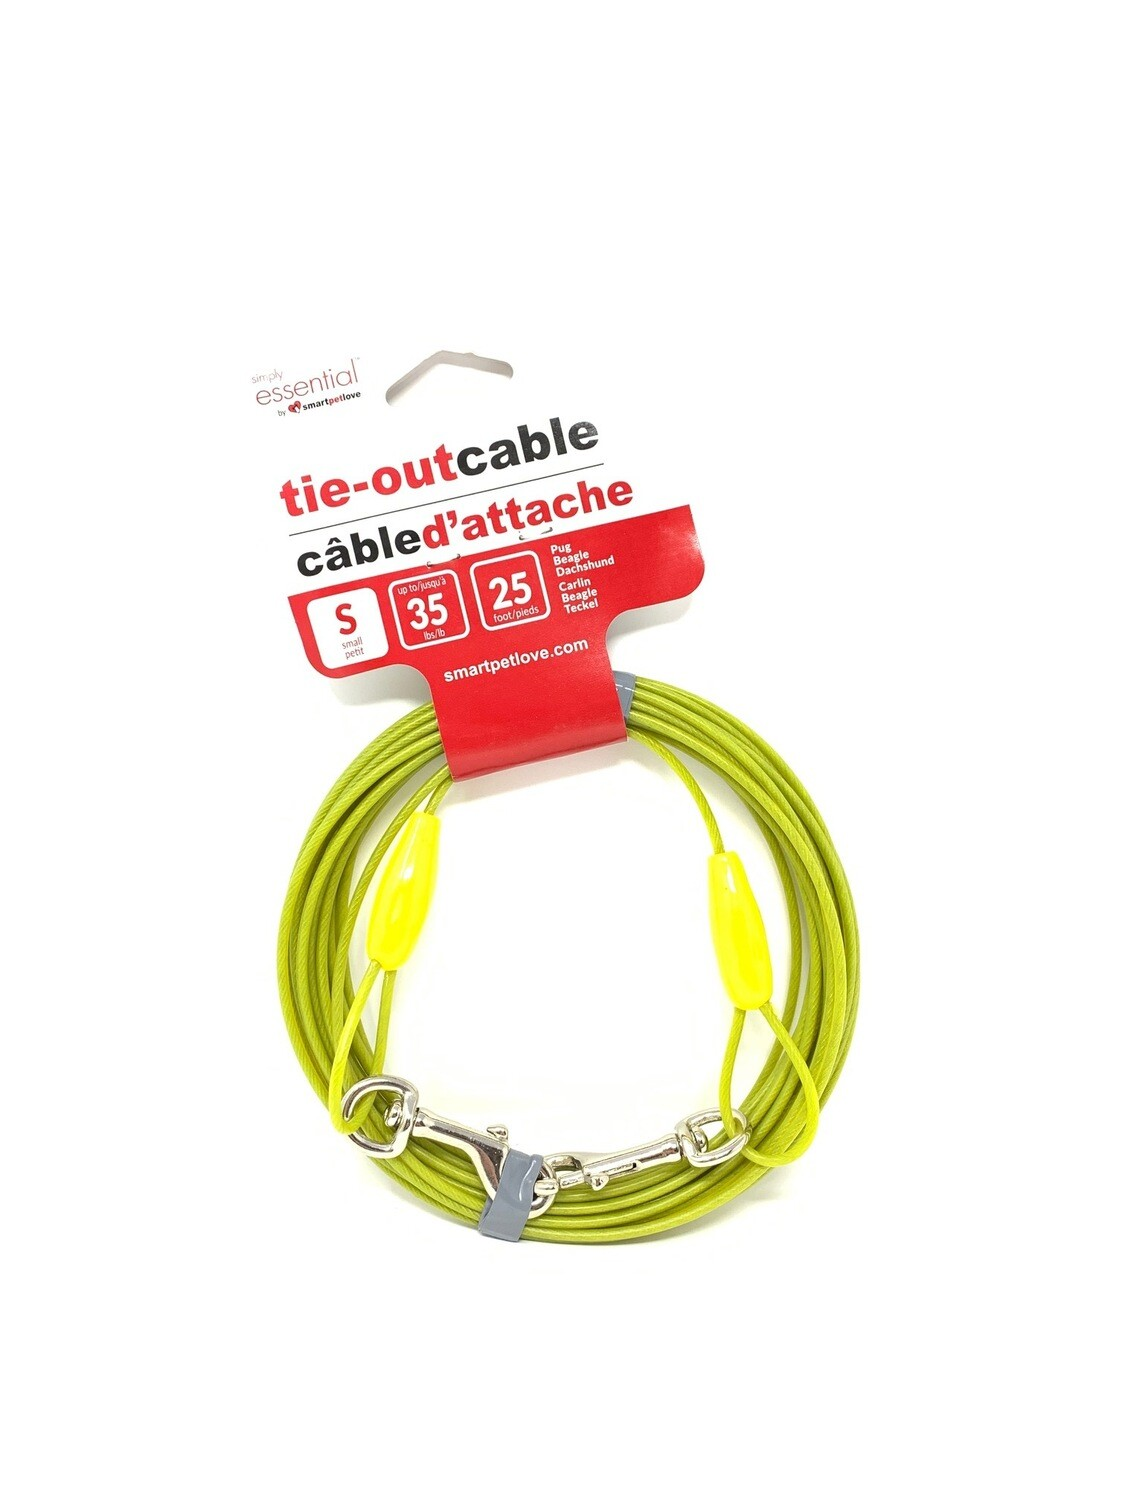 Simply Essential Tie-Out Cable S